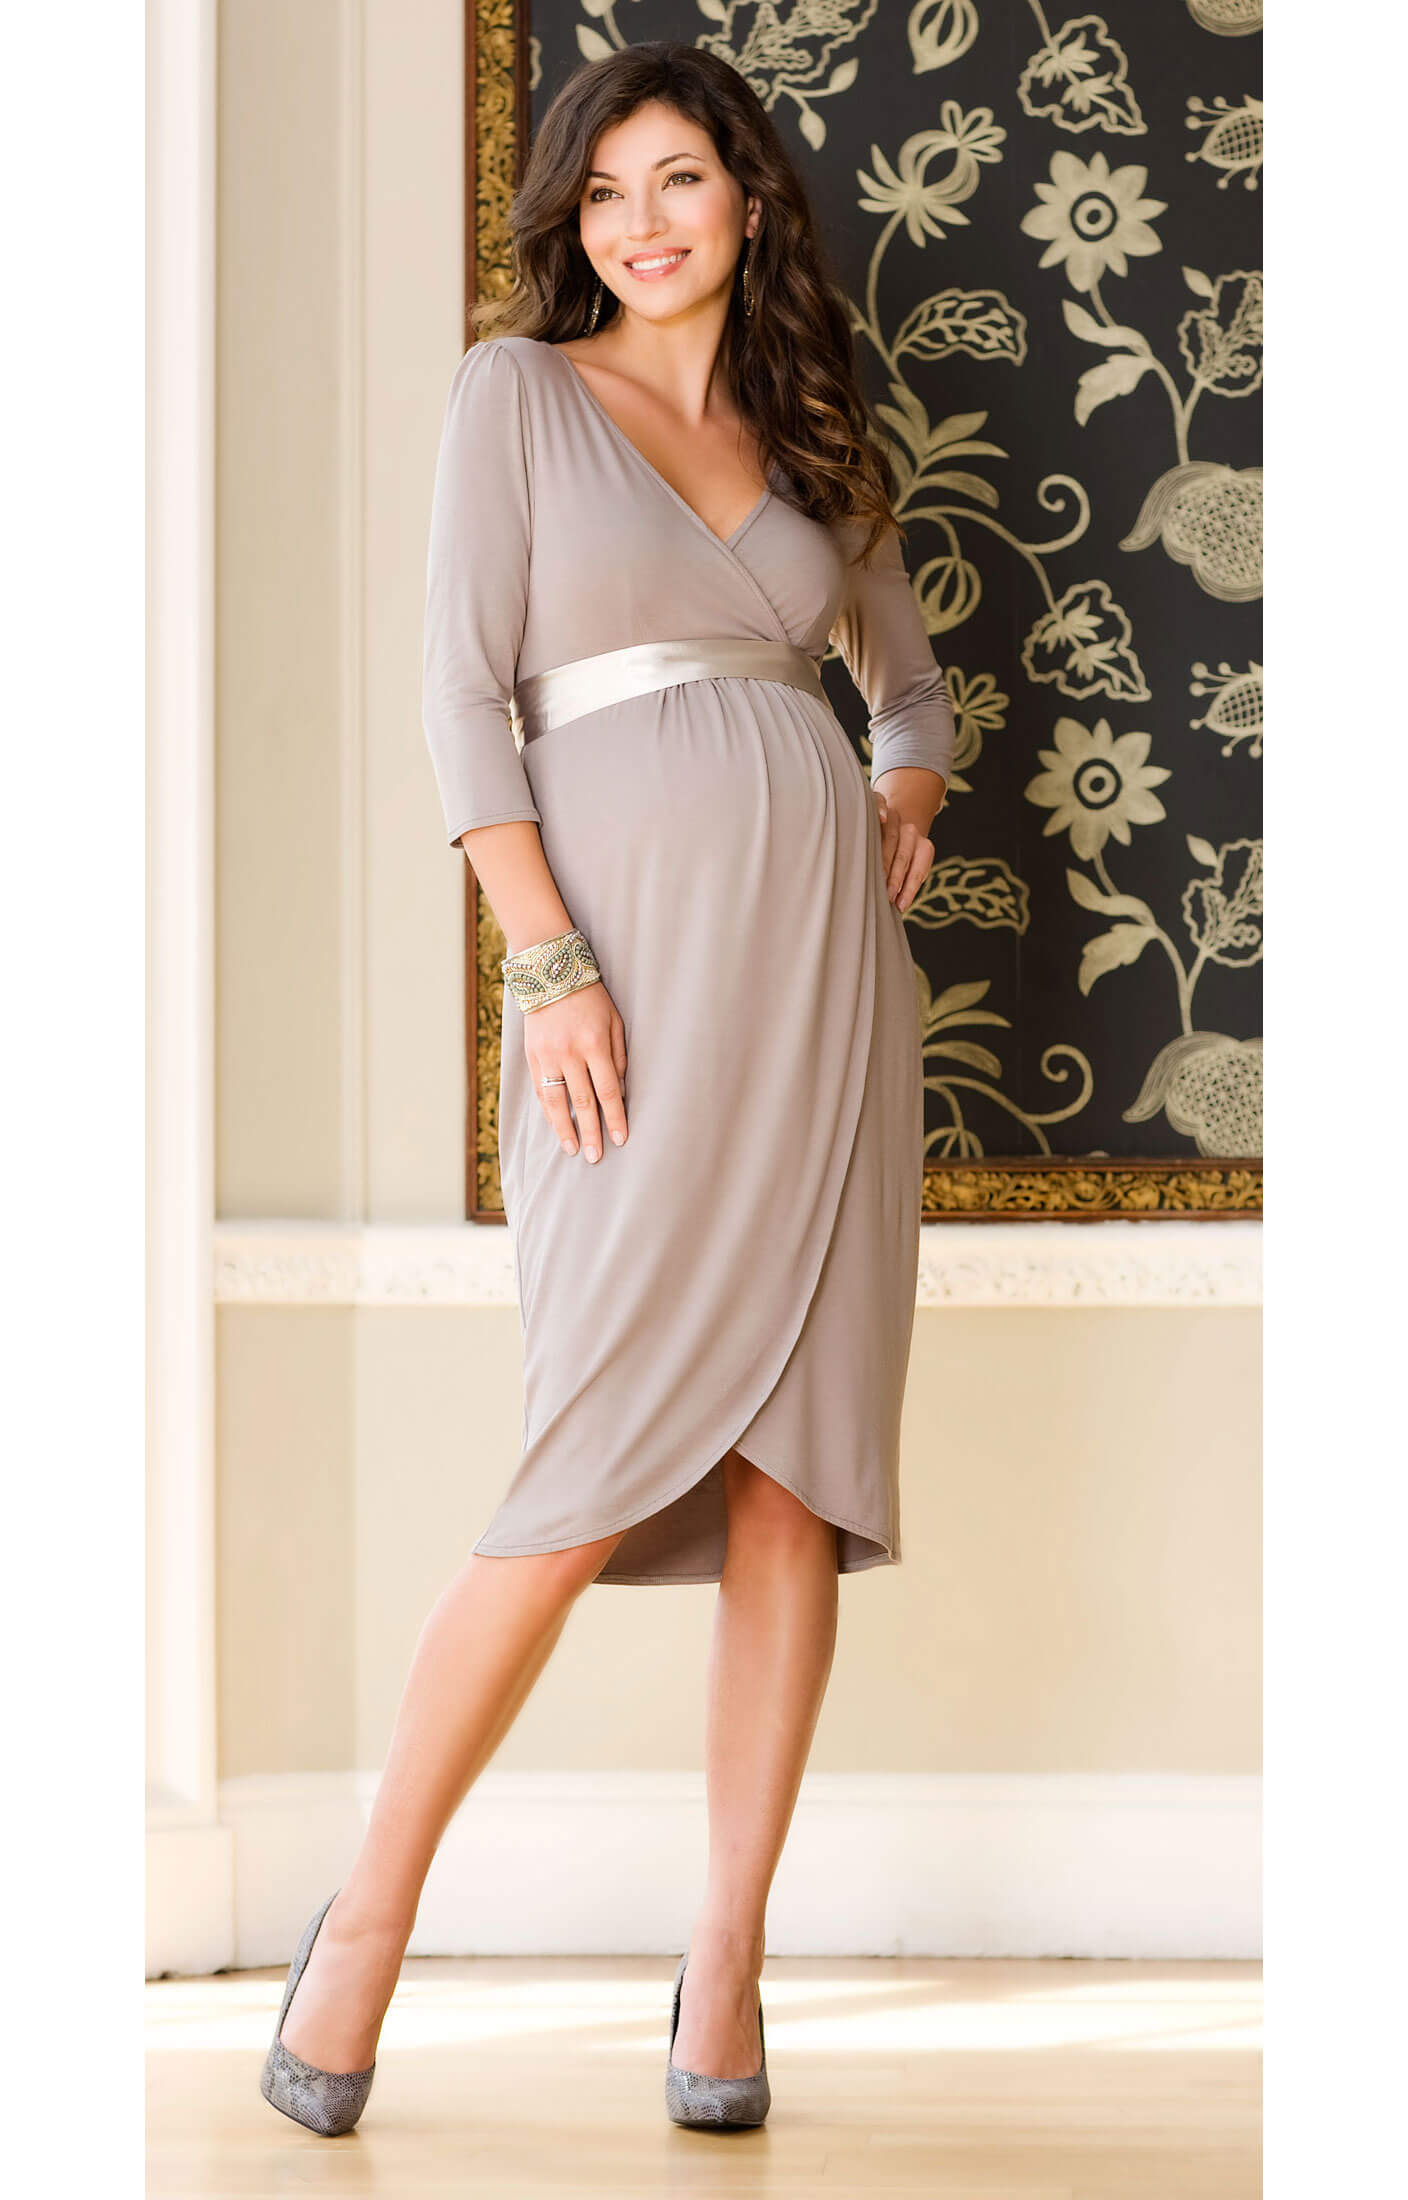 Pregnant Wedding Guest Dresses